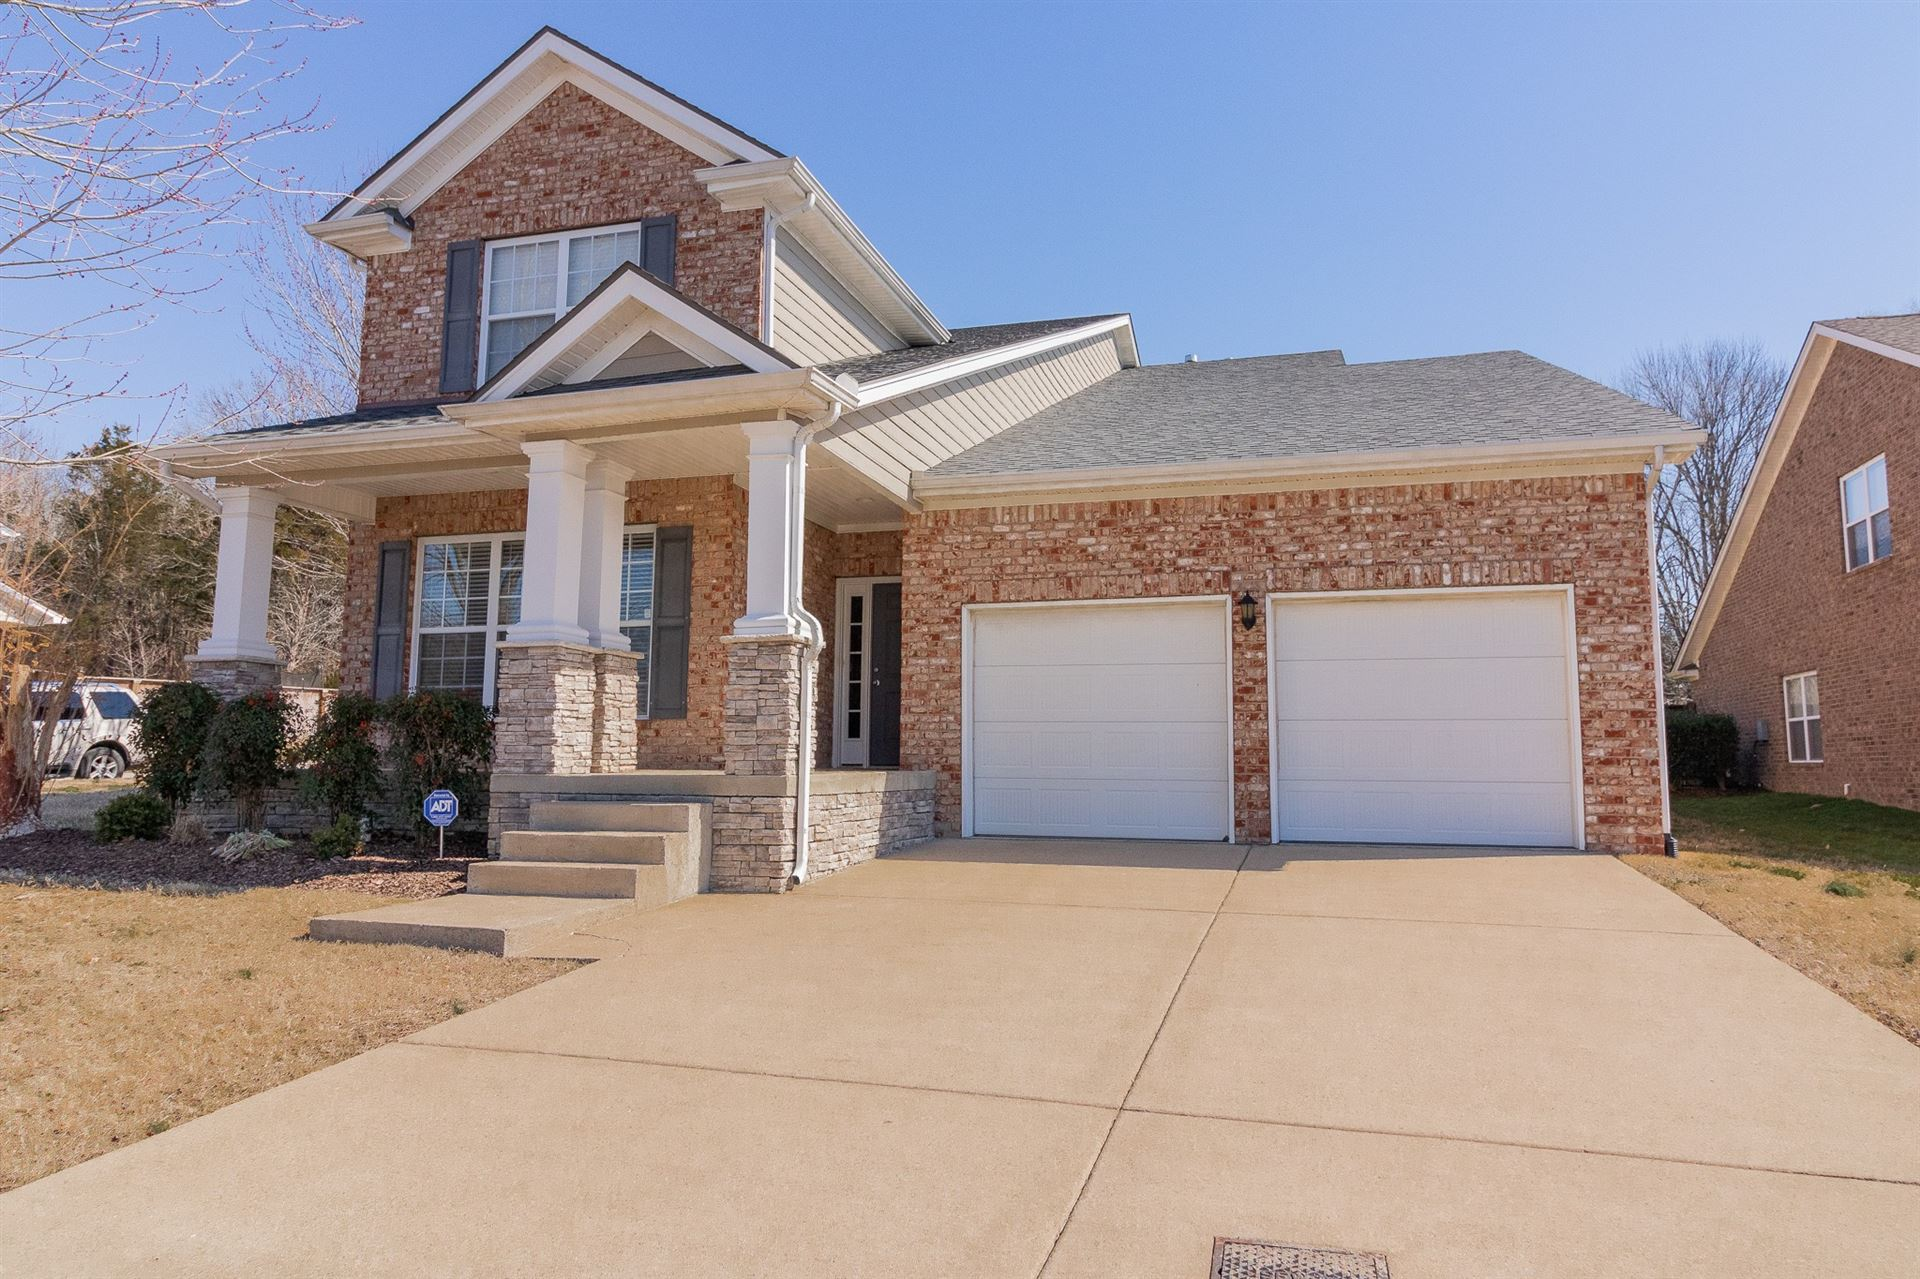 Photo of 1640 Robindale Dr, Hermitage, TN 37076 (MLS # 2230787)